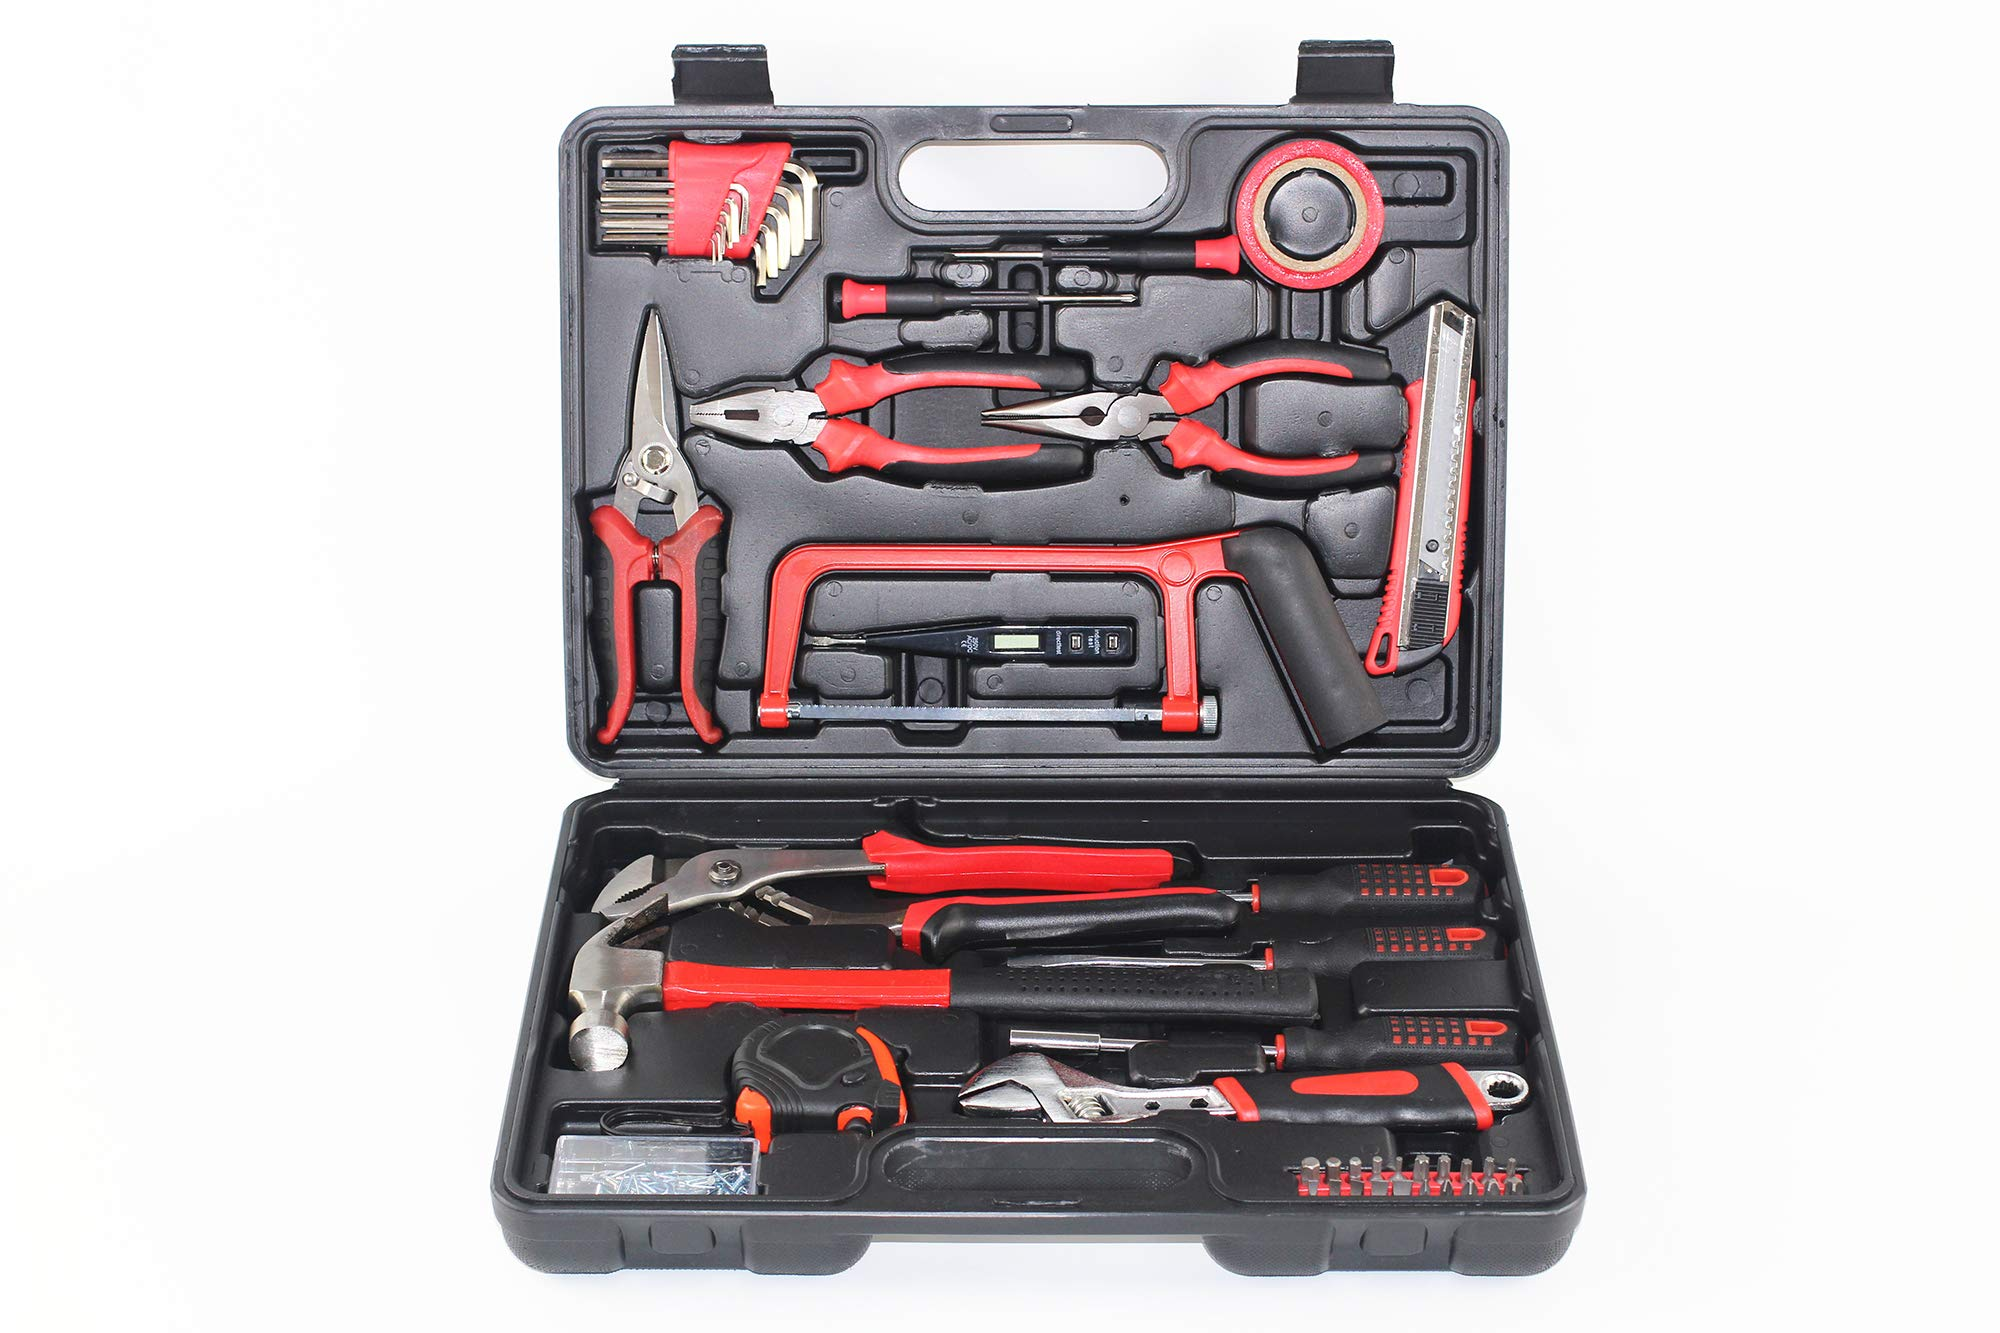 Seven Avail 108PCS Home Tool Kit with Adjustable Wrench, Mixed Household Tool Set Hand-Tool Kit with Plastic Tool box Storage Case by Seven Avail